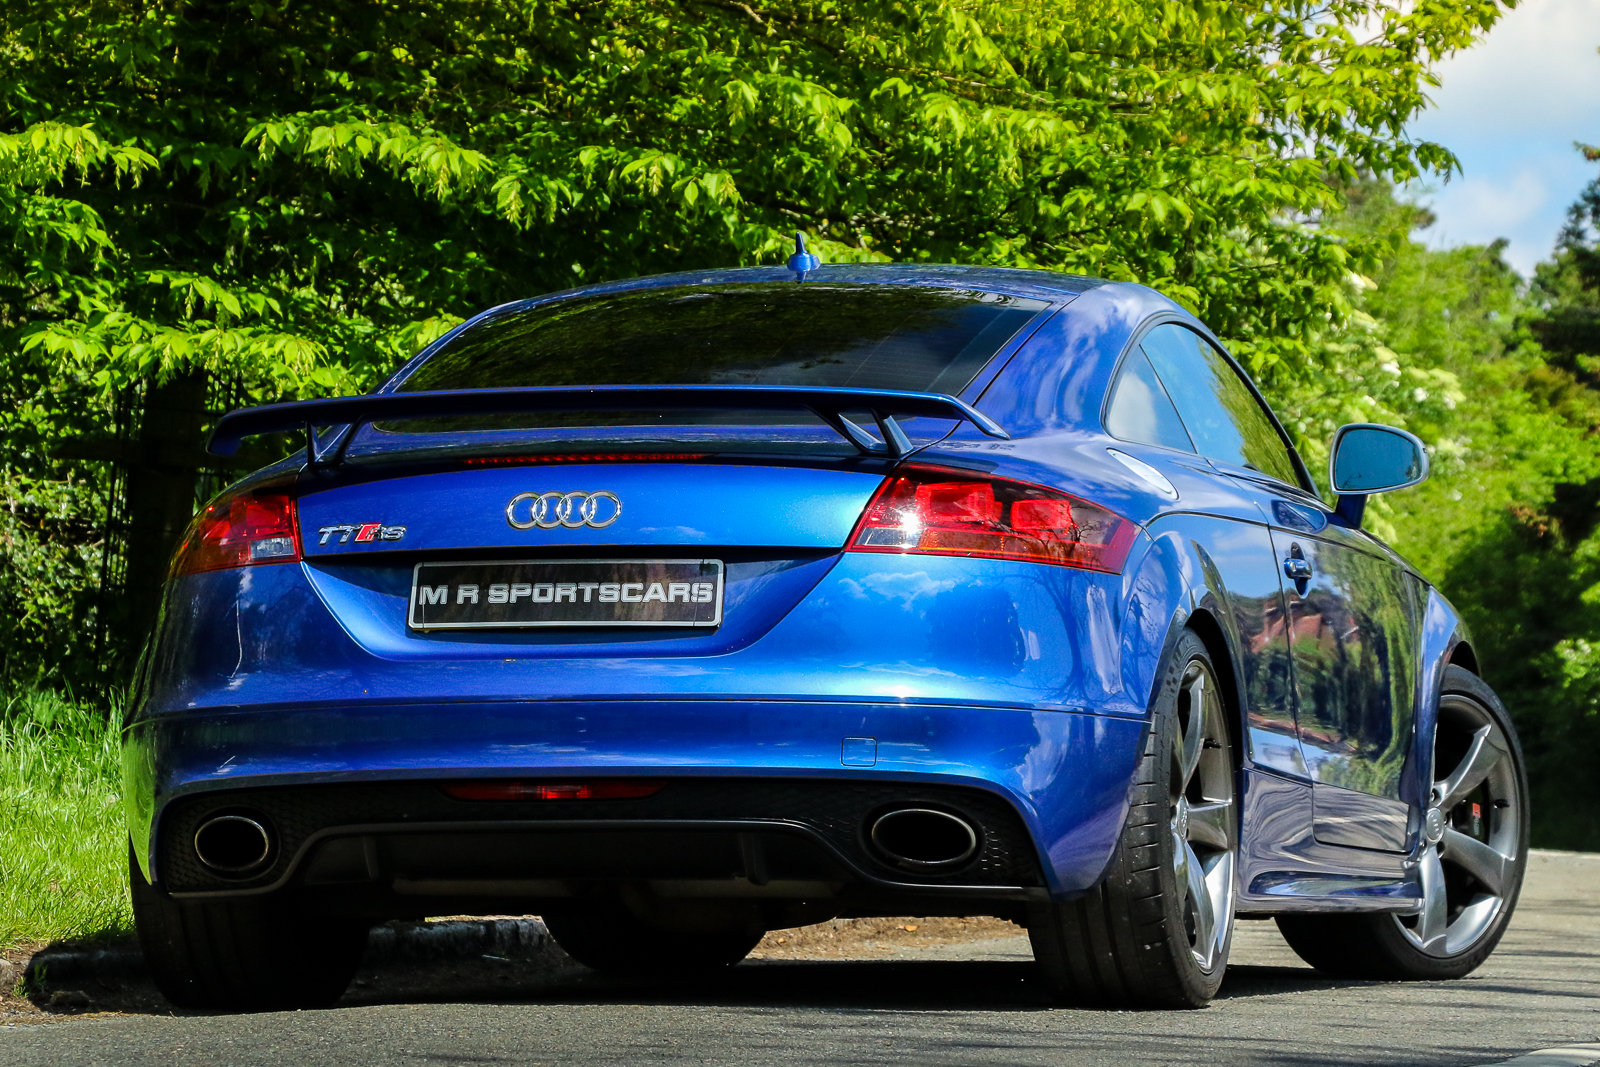 2009 Audi TTRS Sepang Blue Recaro Wingback Seats Manual For Sale (picture 2 of 6)